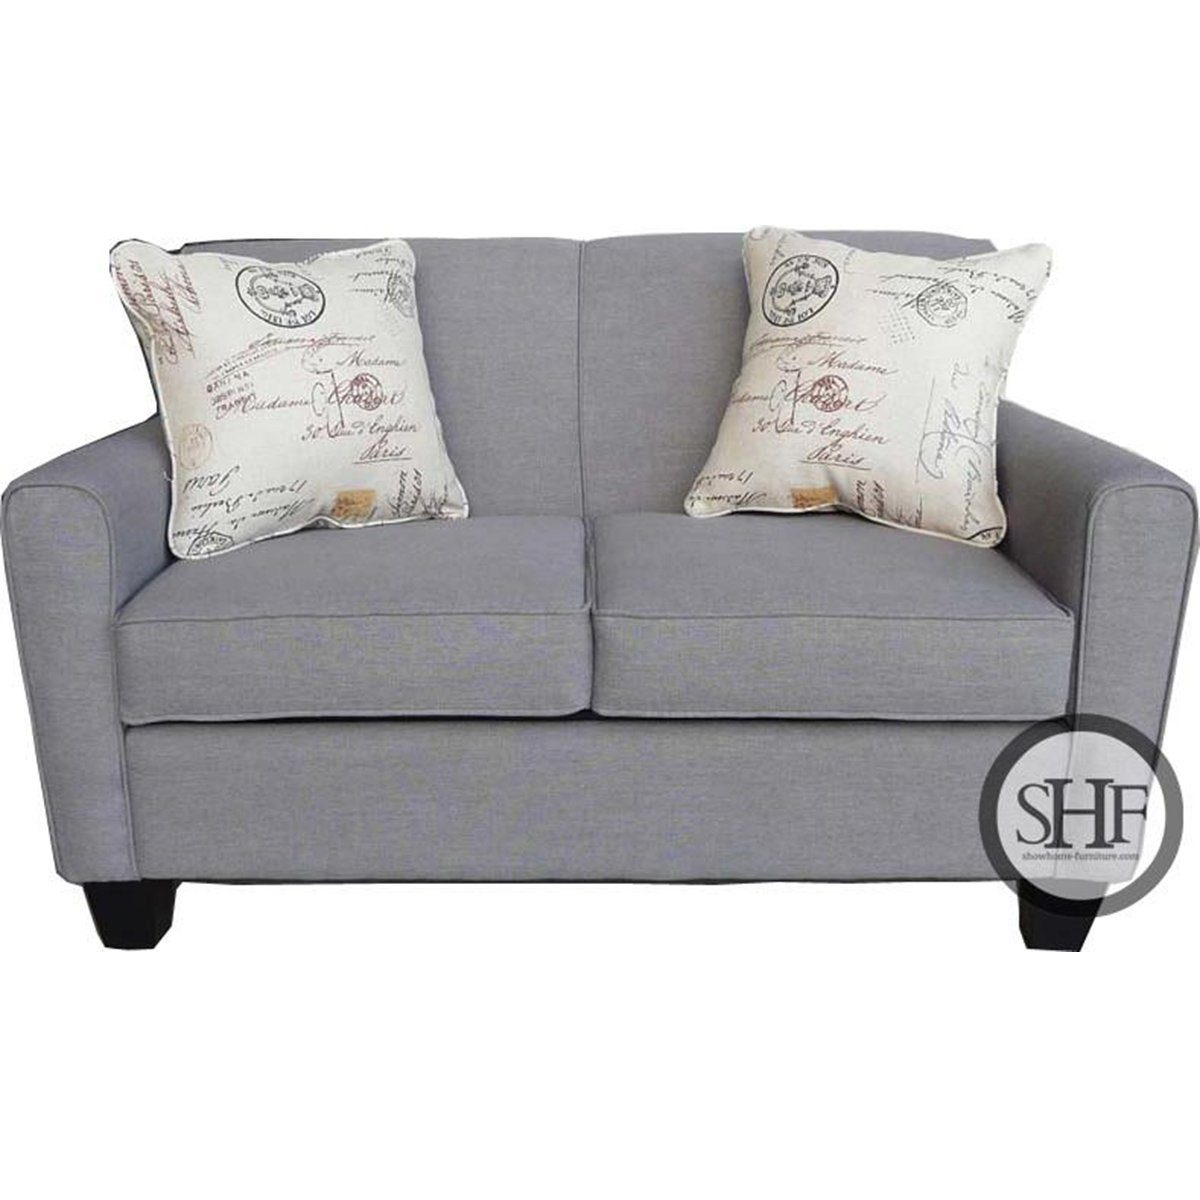 loveseat sofas to fabric full chair century plus and go of well dreaded rooms for size with sale sleeper inspirations also as pictures sofa macys together set leather mid single